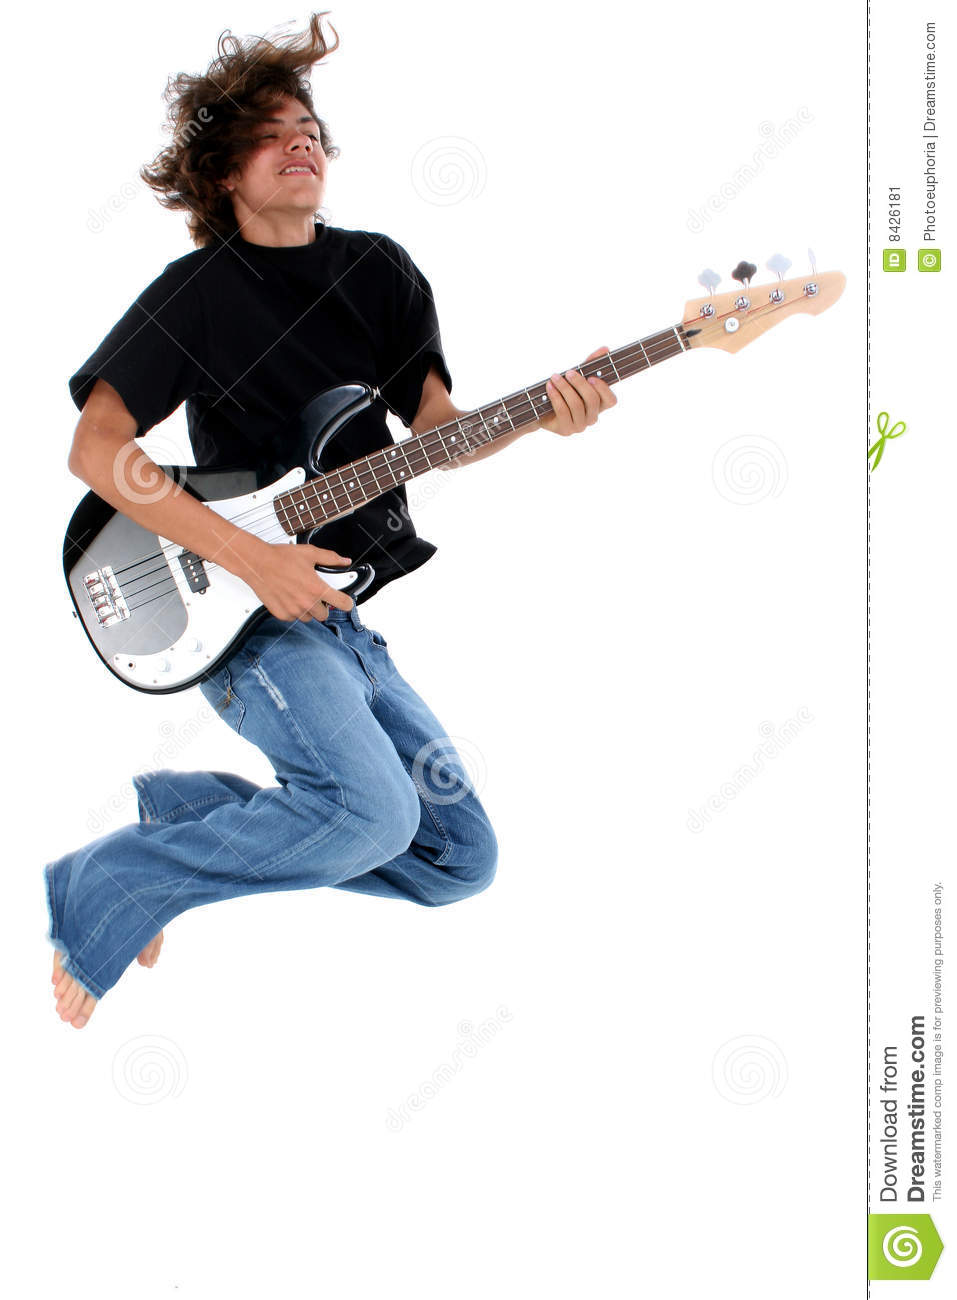 Teenager with bass guitar